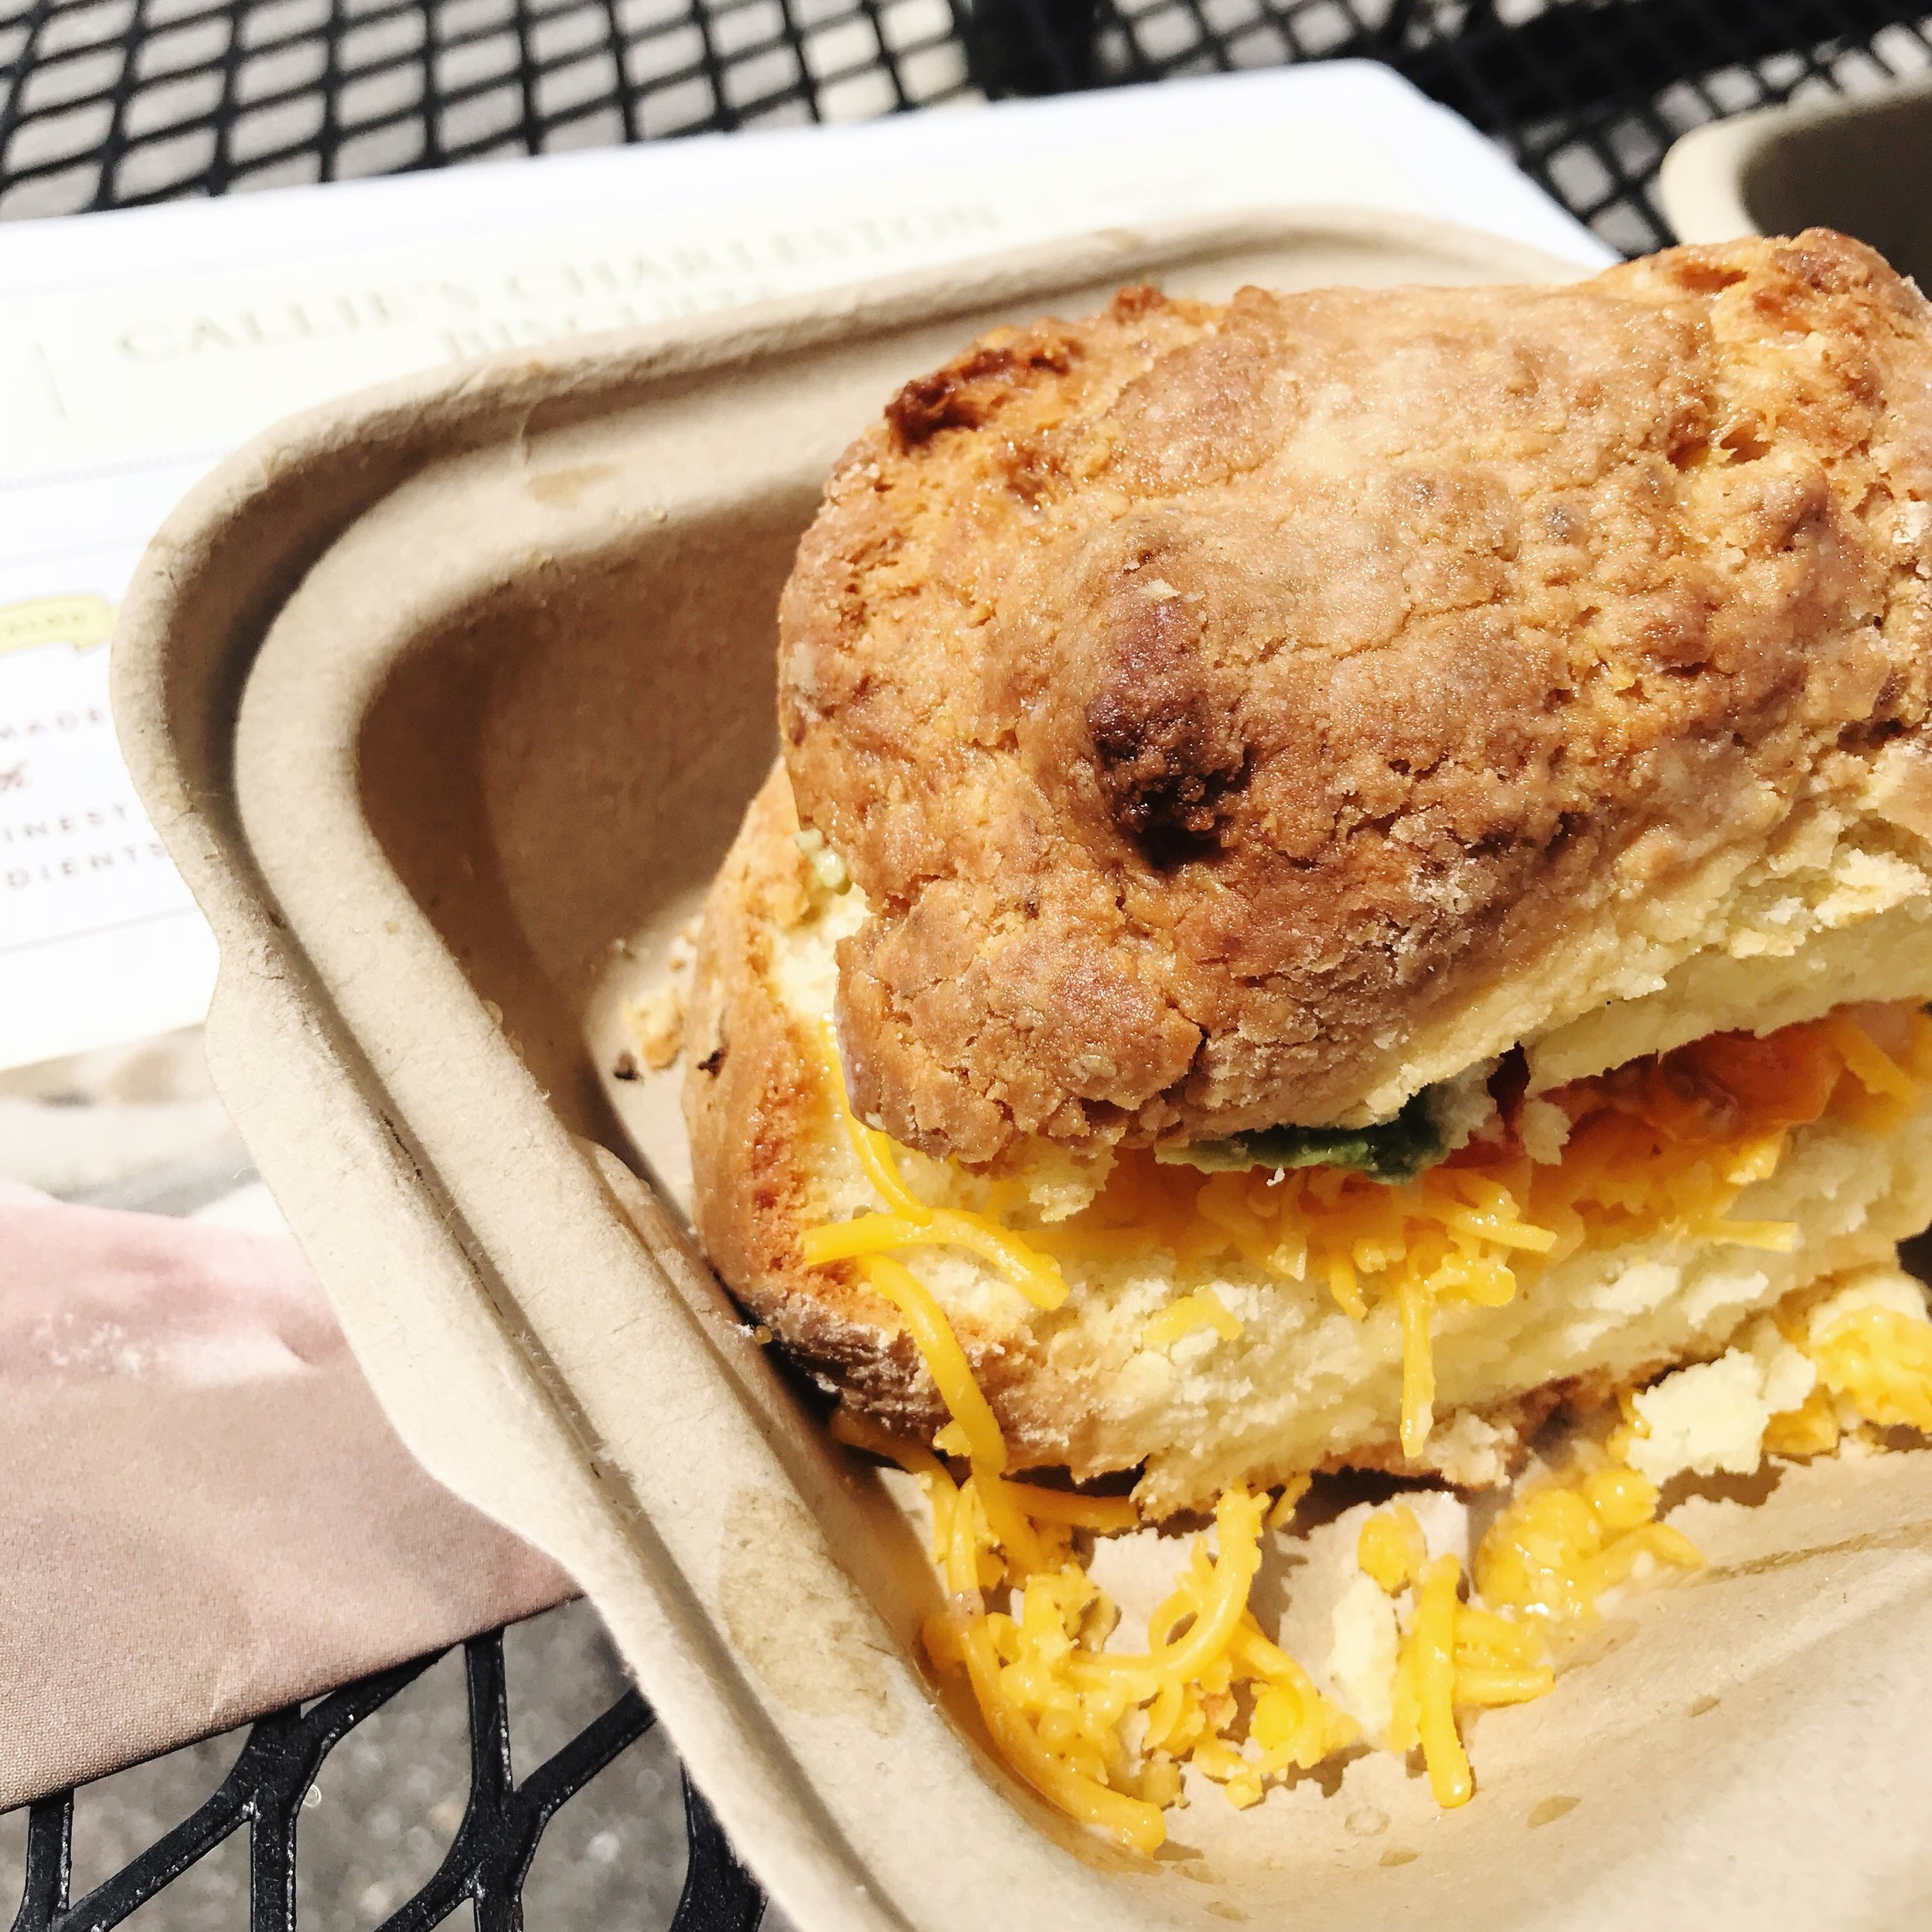 A breakfast biscuit sandwich from Callie's Hot Little Biscuit.